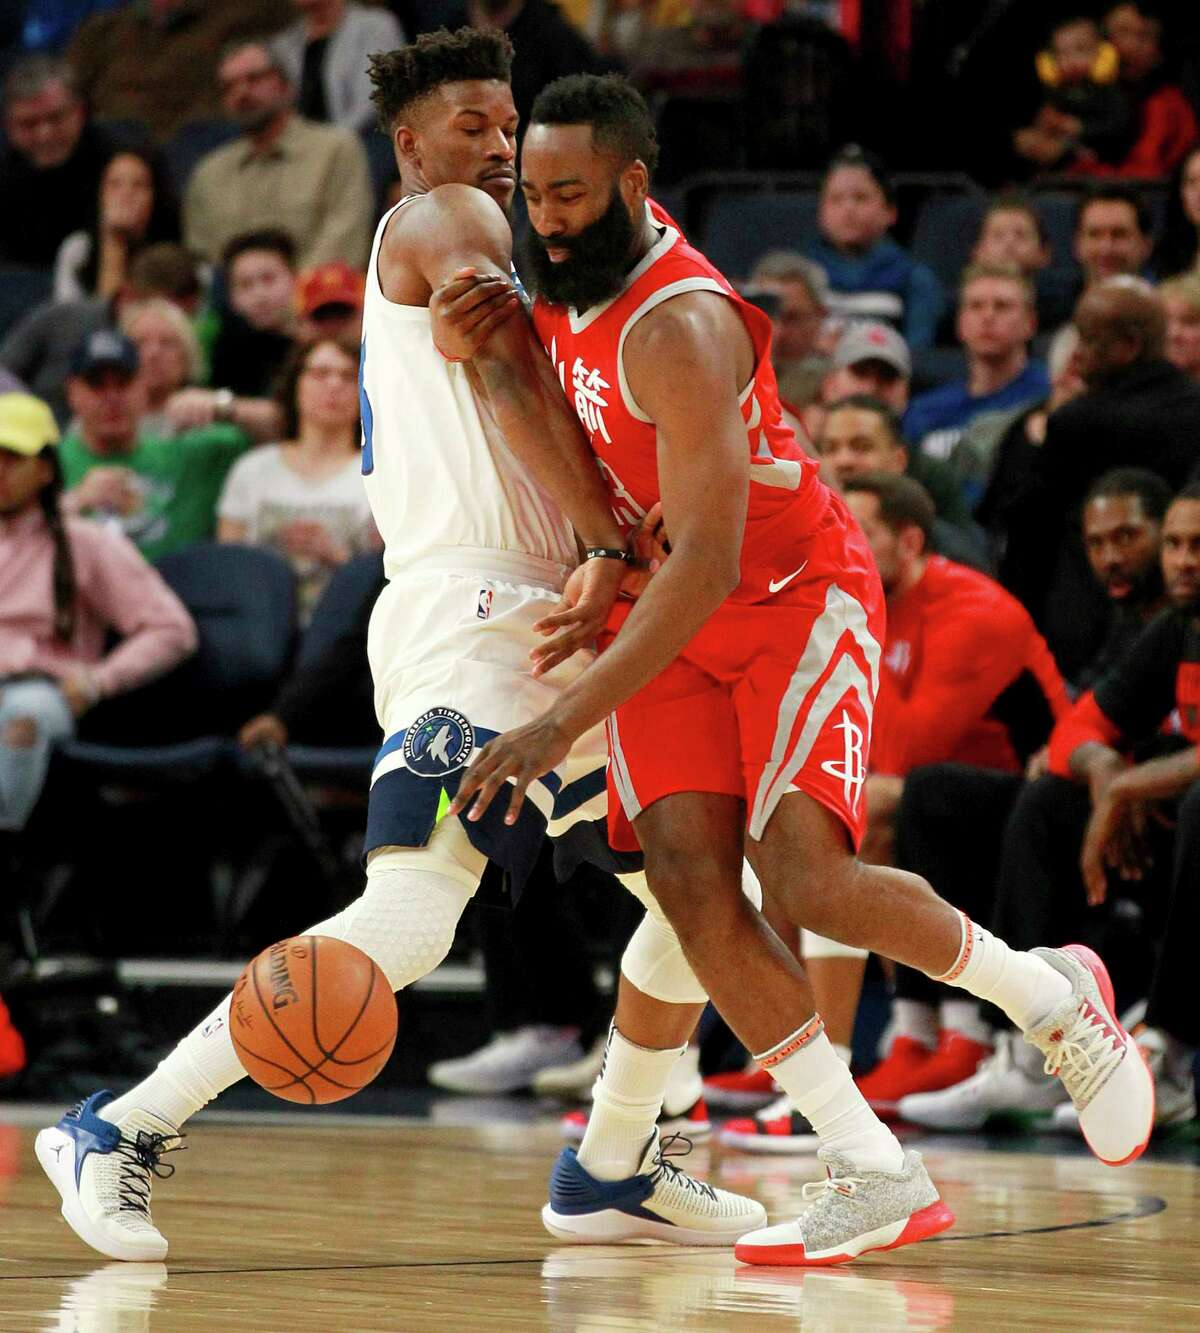 Minnesota Timberwolves forward Jimmy Butler, left, defends against Houston Rockets guard James Harden during the first quarter of an NBA basketball game Tuesday, Feb. 13, 2018, in Minneapolis. (AP Photo/Andy Clayton-King)